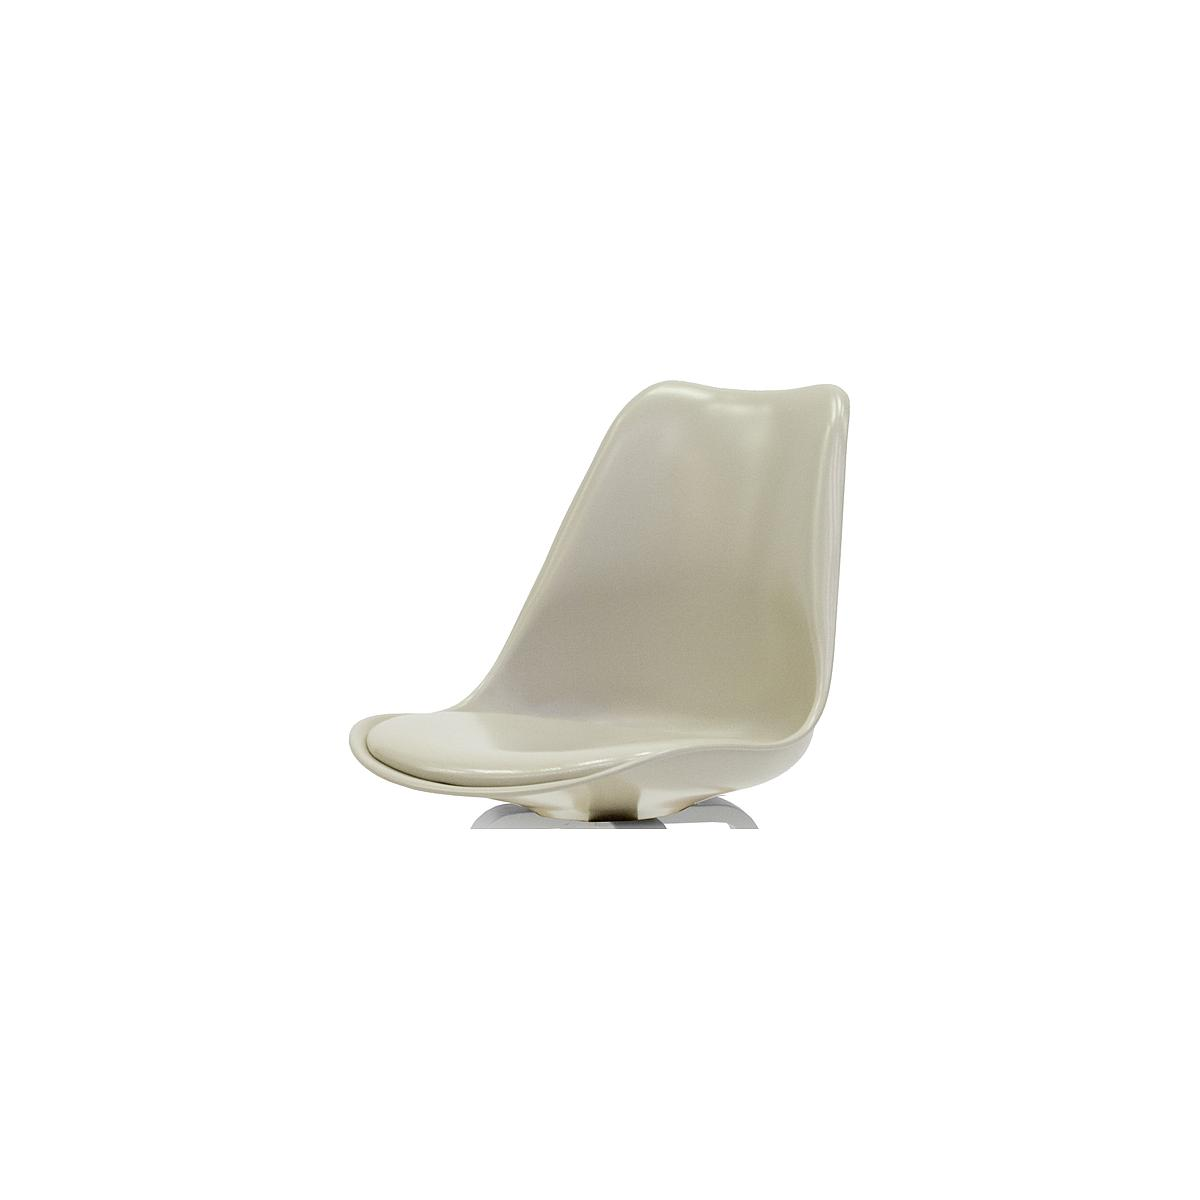 C-BAR by Tenzo Assise Gina warmgrey